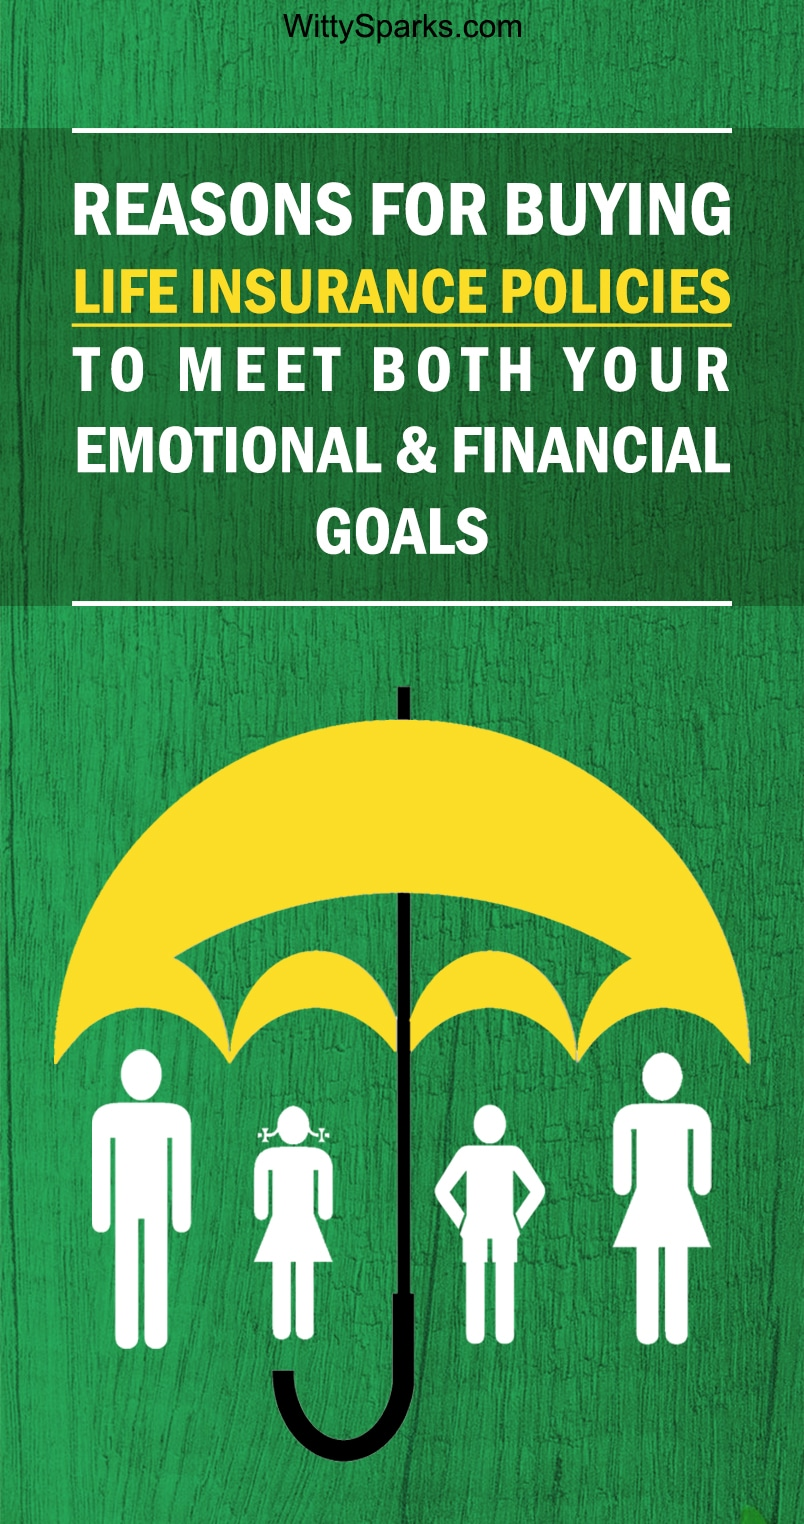 Life Insurance Policies for Financial Goals